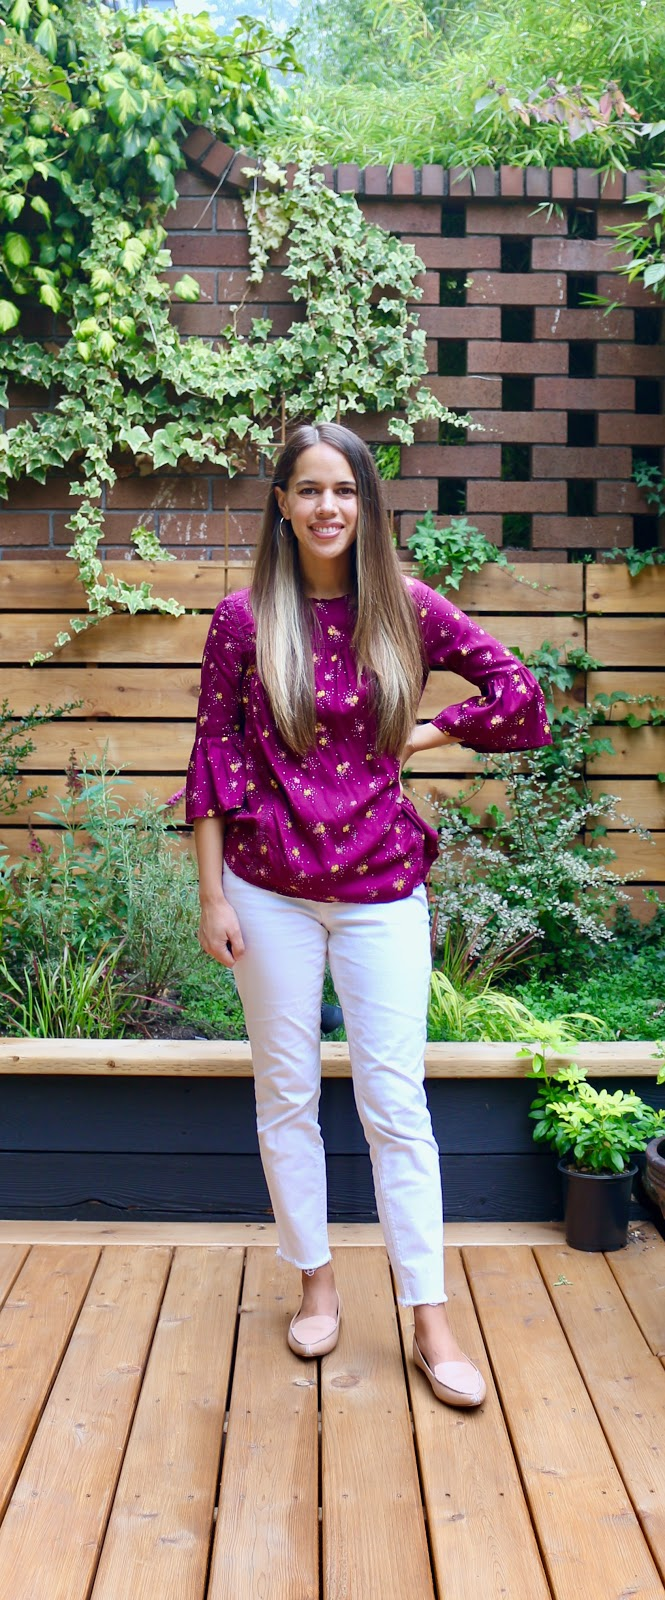 Jules in Flats - Burgundy Floral Top with White Jeans (Business Casual Workwear on a Budget)